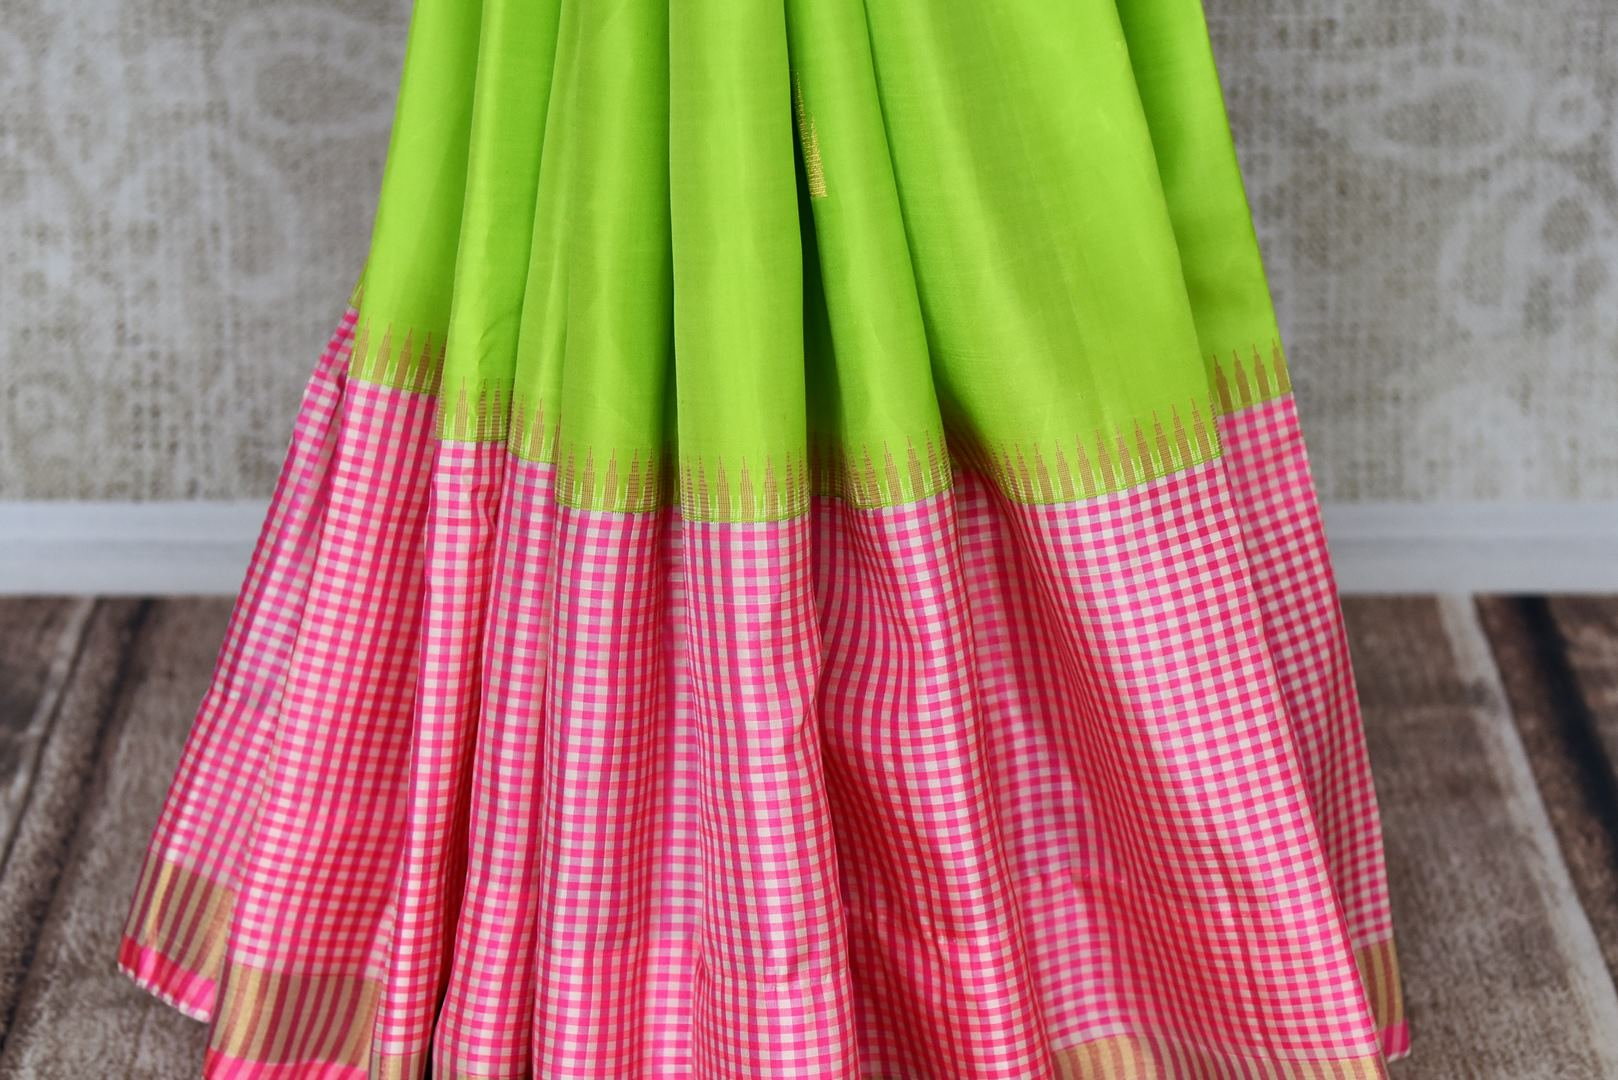 Buy fluorescent green Kanjeevaram silk saree online in USA with pink check border. Shop more such exquisite Indian saris in USA from Pure Elegance. Get floored by a range of designer sarees, pure silk sarees, Kanchipuram silk saris at our Indian fashion store in USA.-pleats